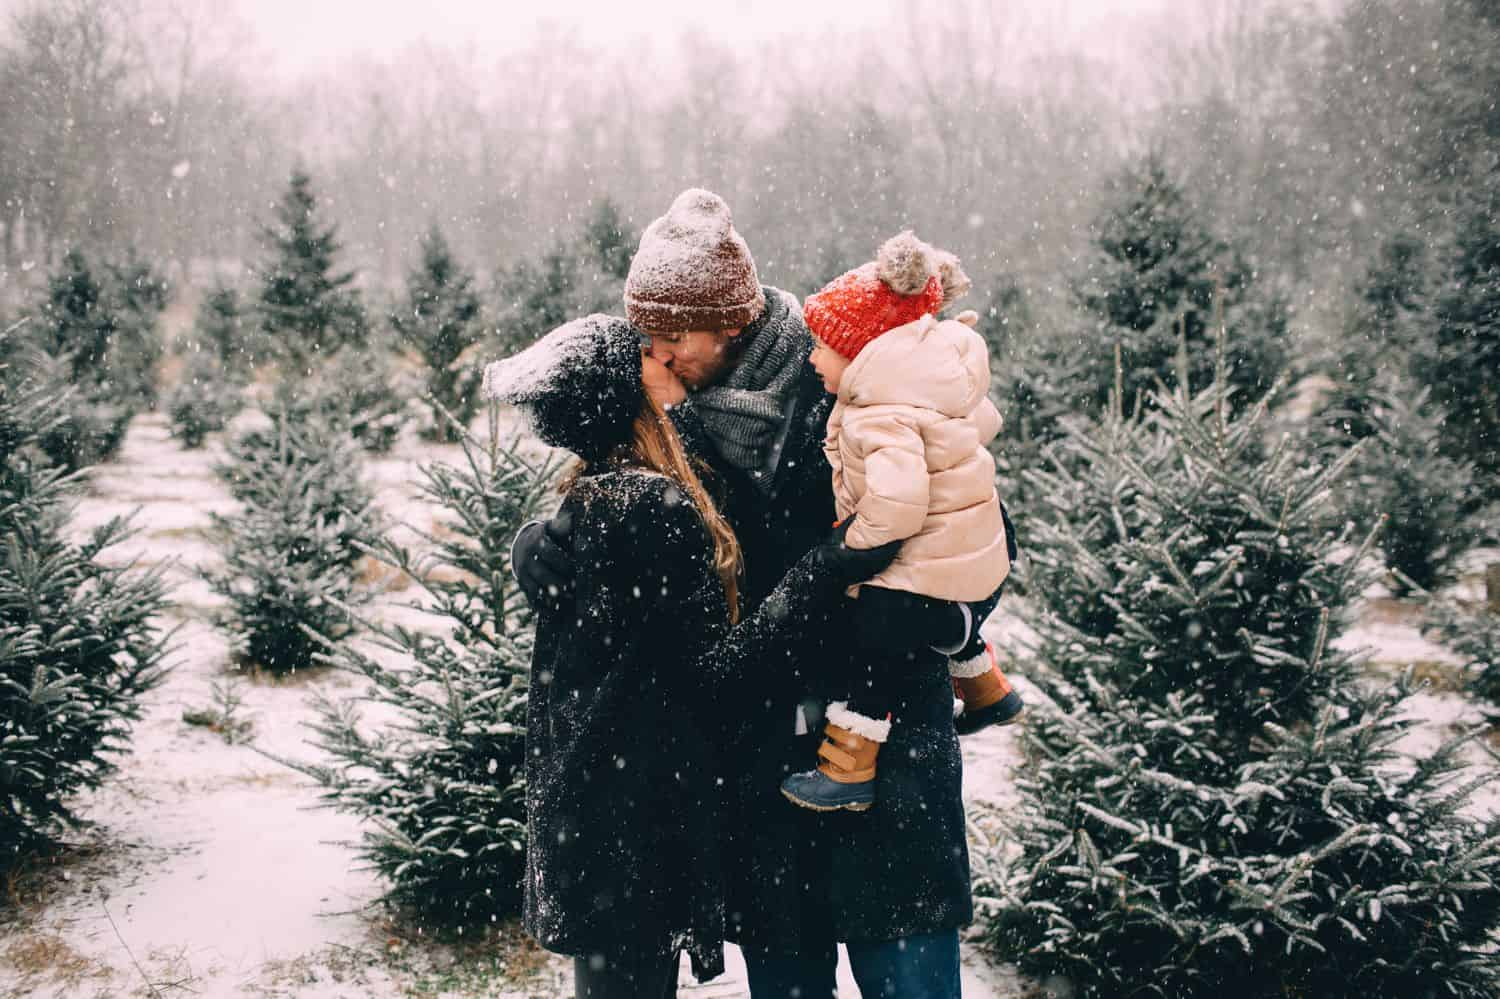 Two parents hold their toddler and kiss in a snowy field overlooking a Christmas tree farm.